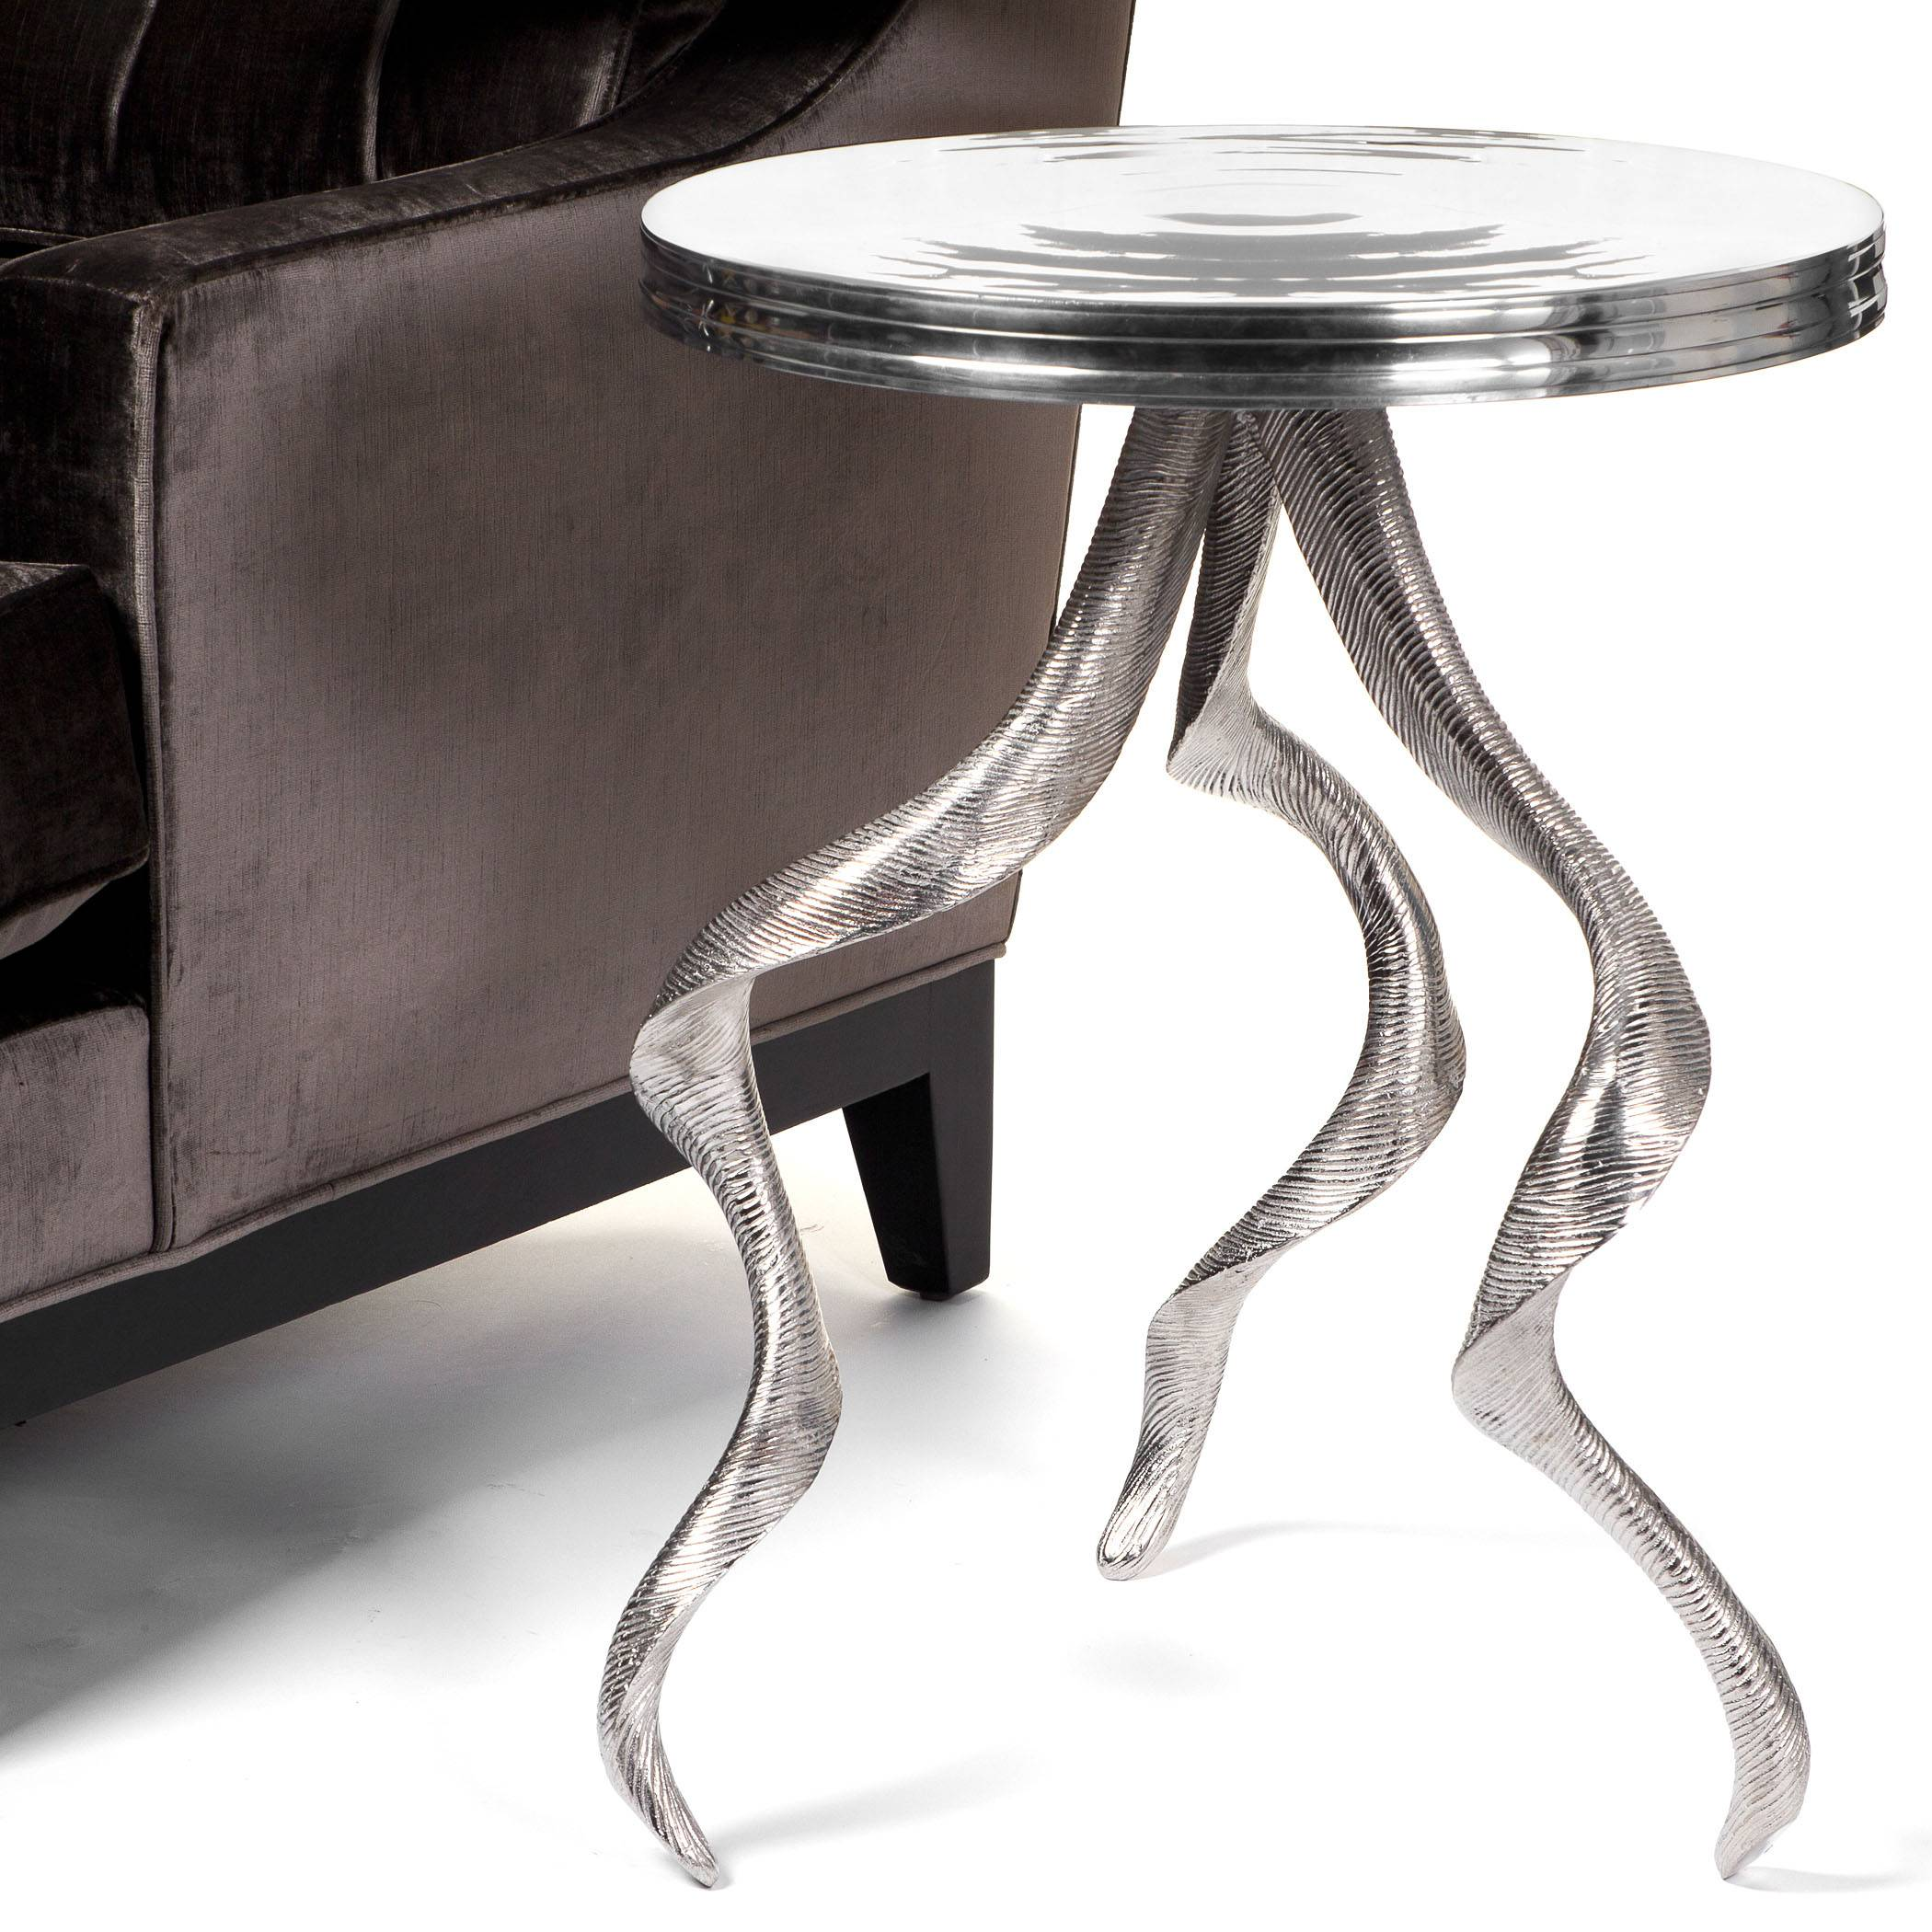 Heavy aluminum is cast into antler shapes to form the legs of an intriguing and sophisticated side table from Z Gallerie.